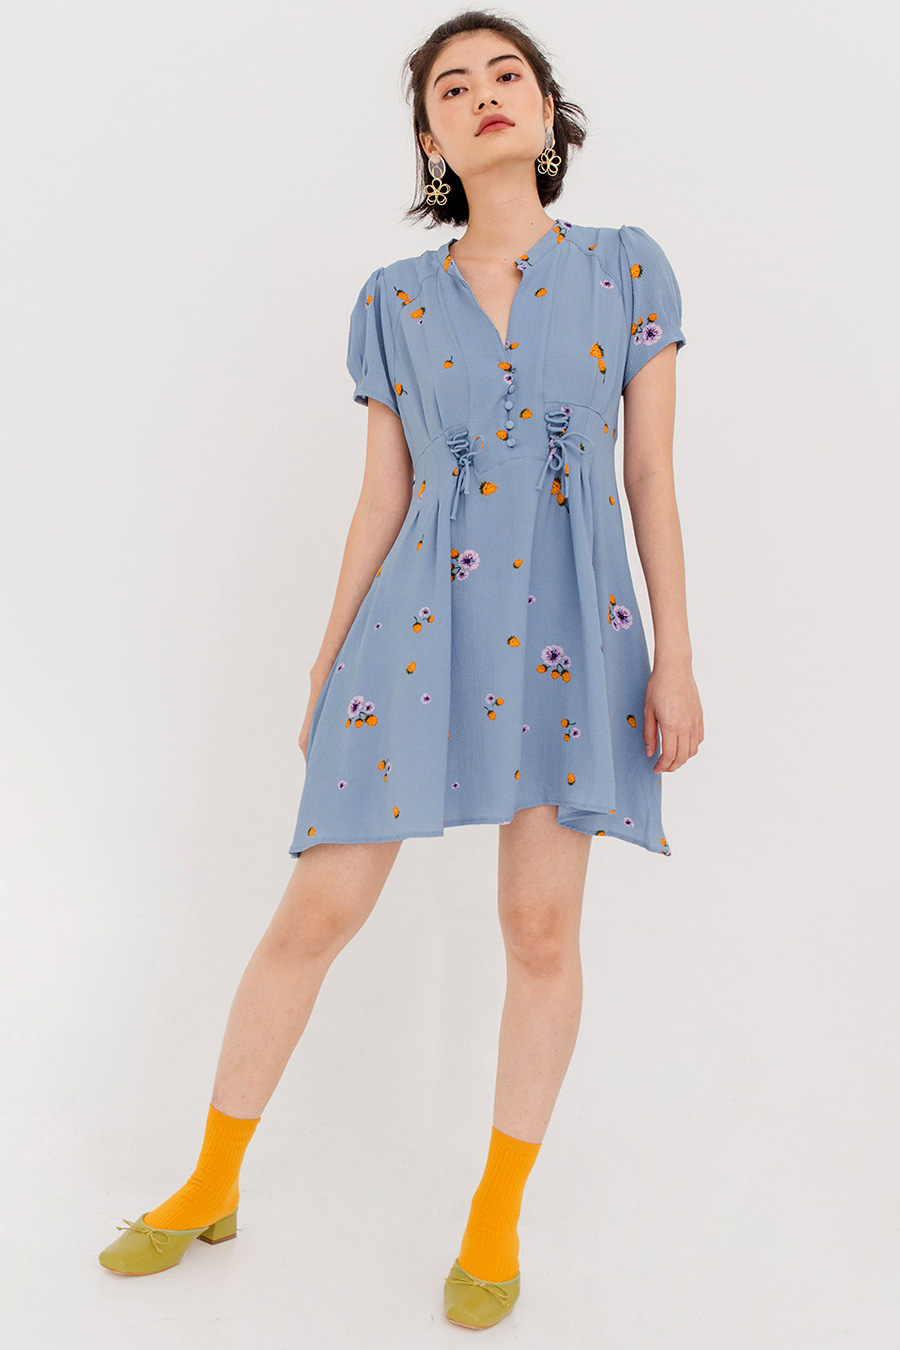 *BO* LALA FLORAL LACED DRESS - BLUE